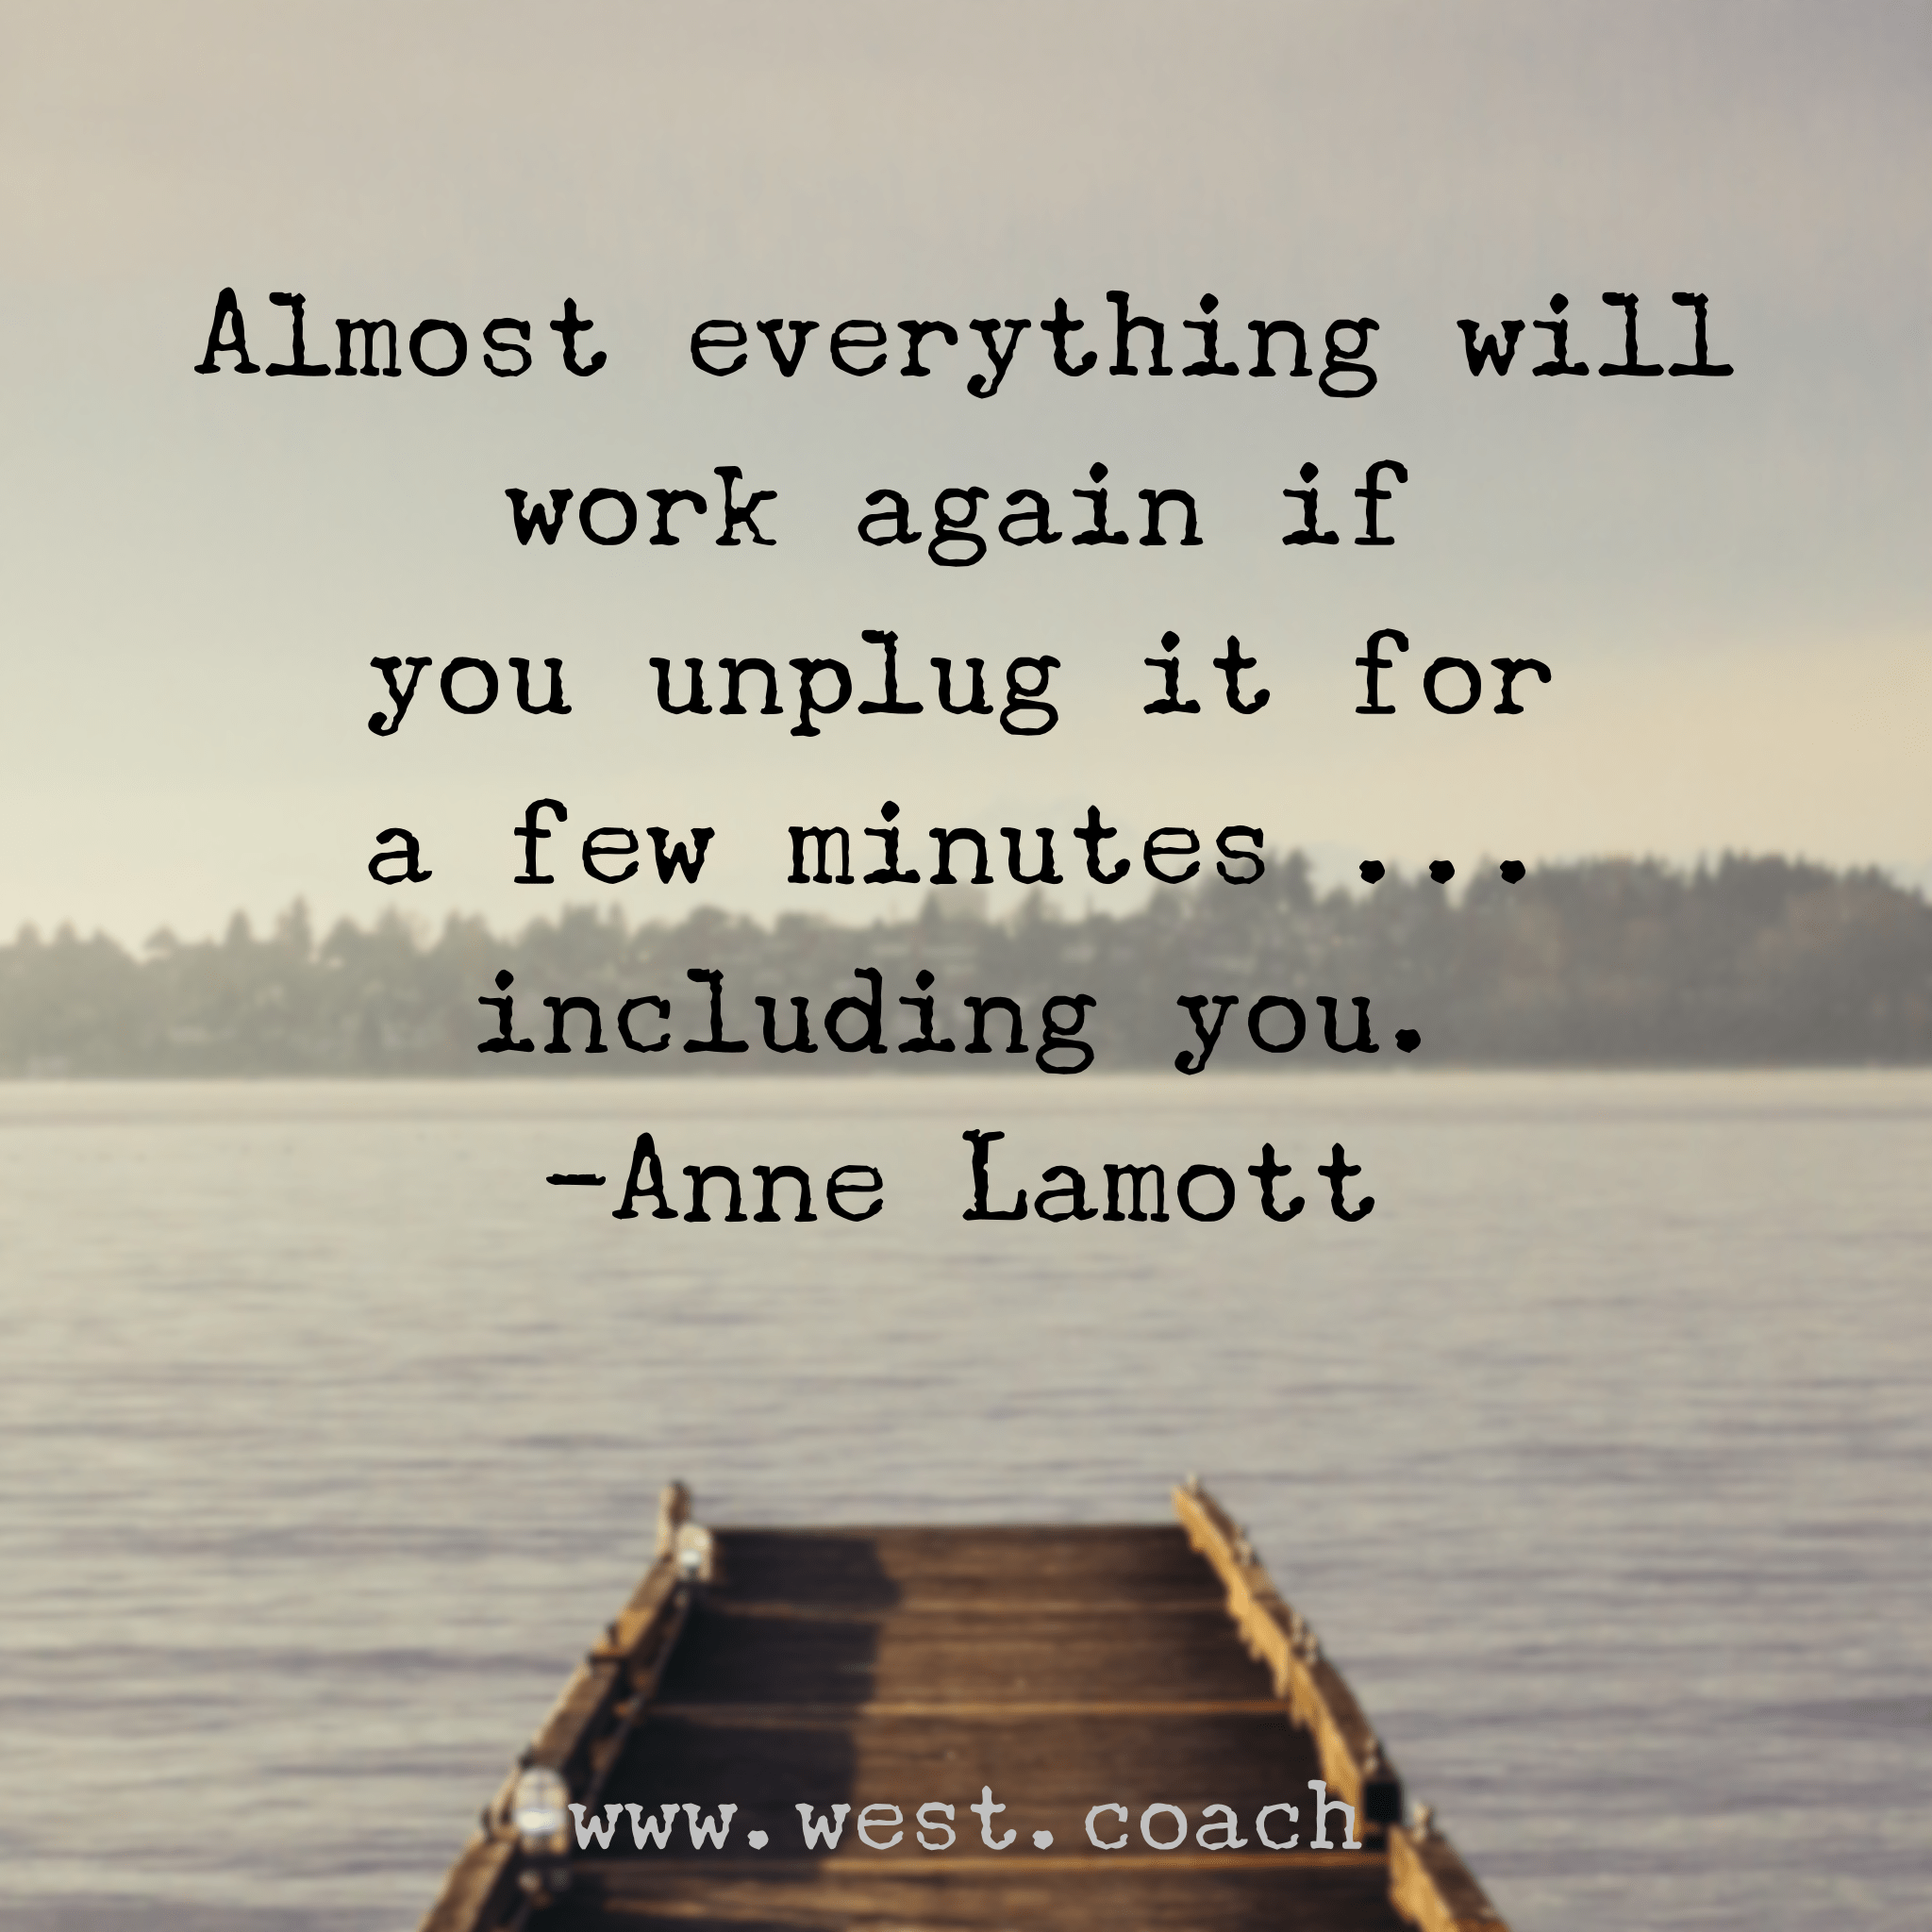 End Of Life Quotes Anne Lamotte End Of Life Quotes Picture